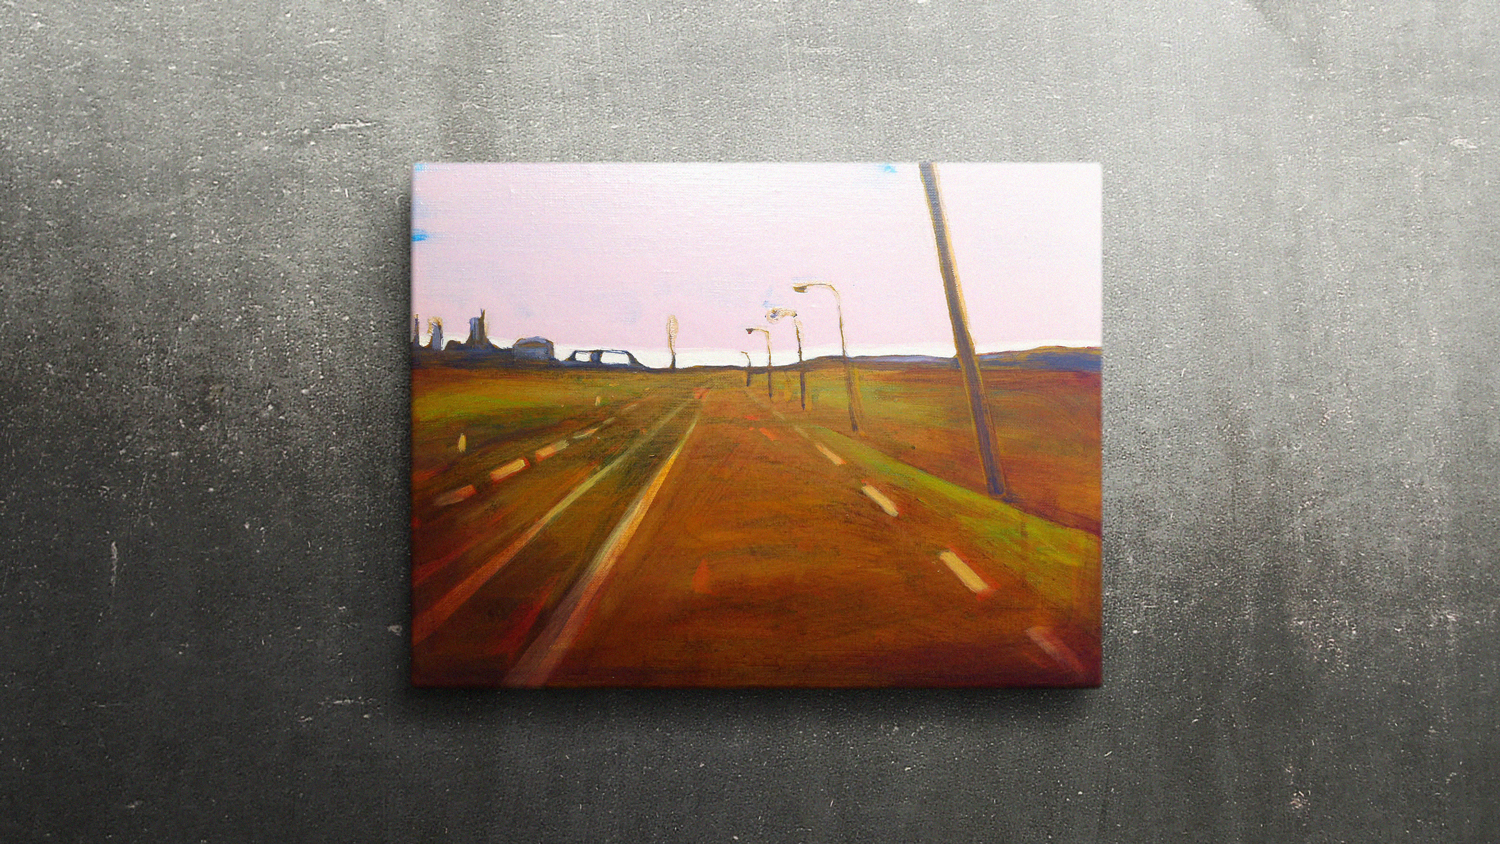 EUROPAWEG MAASVLAKTE  40 X 30cm Oil on canvas